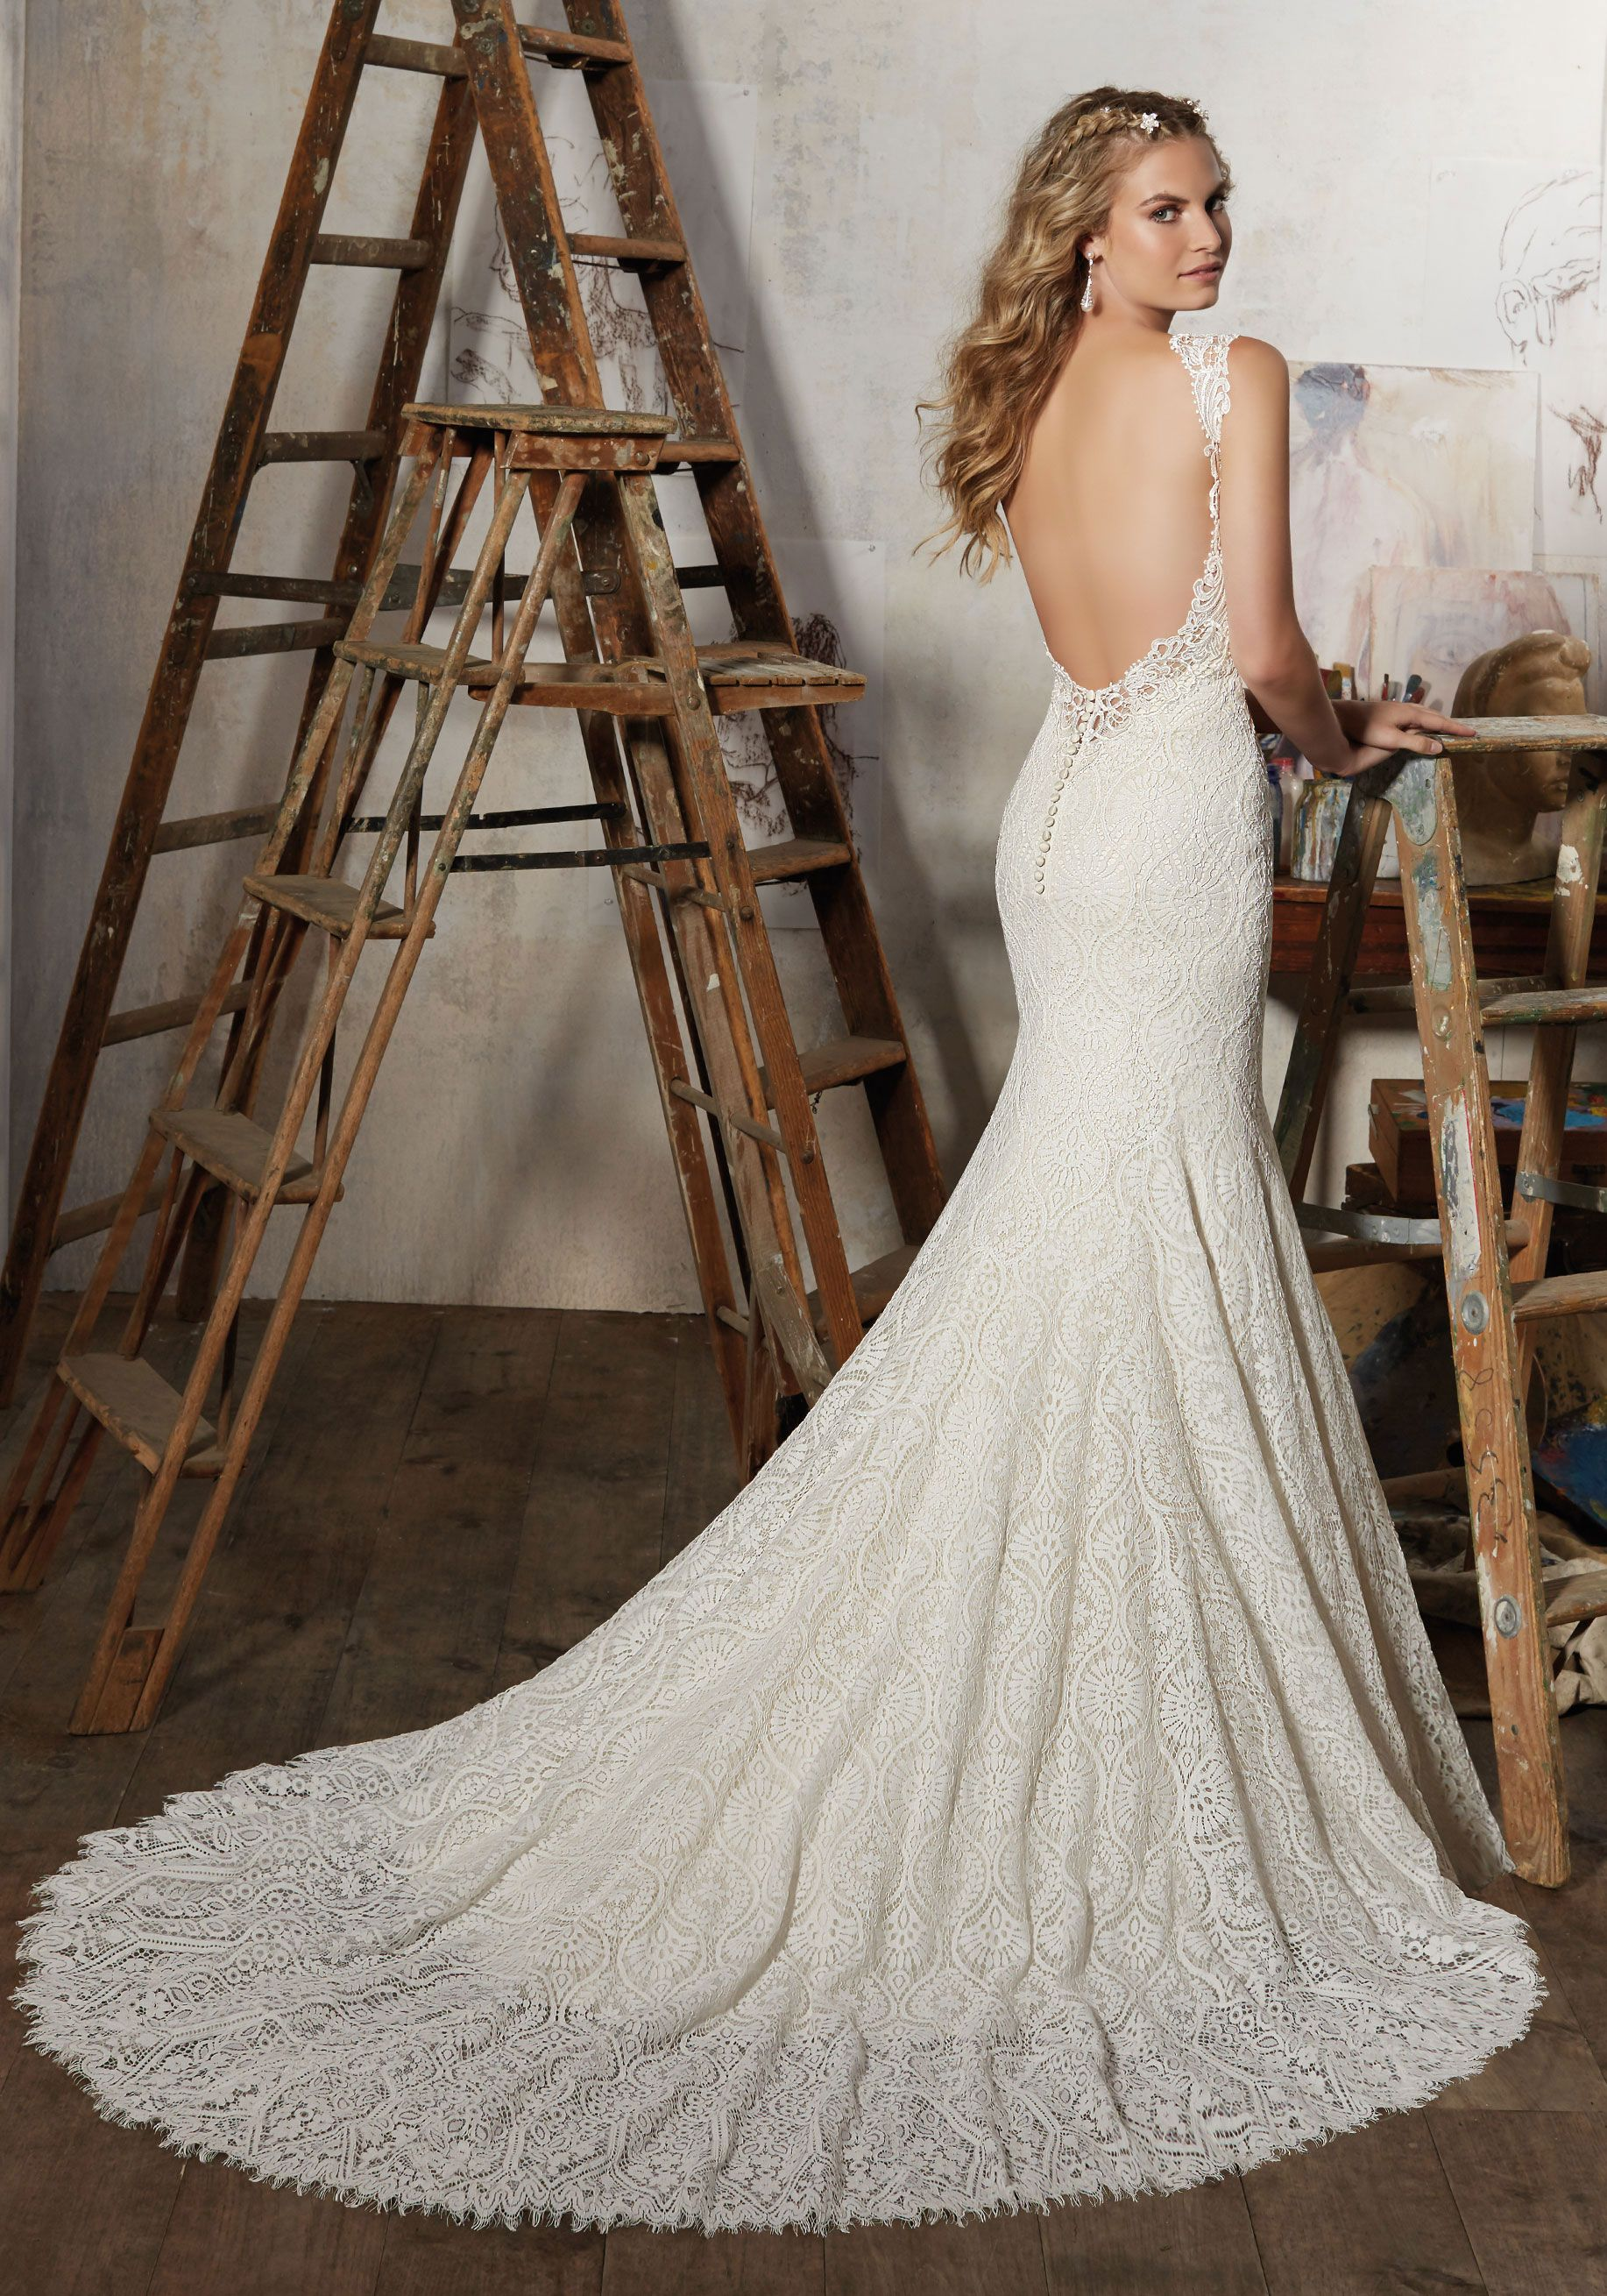 stunning wedding dress made of allover vintage lace with venice